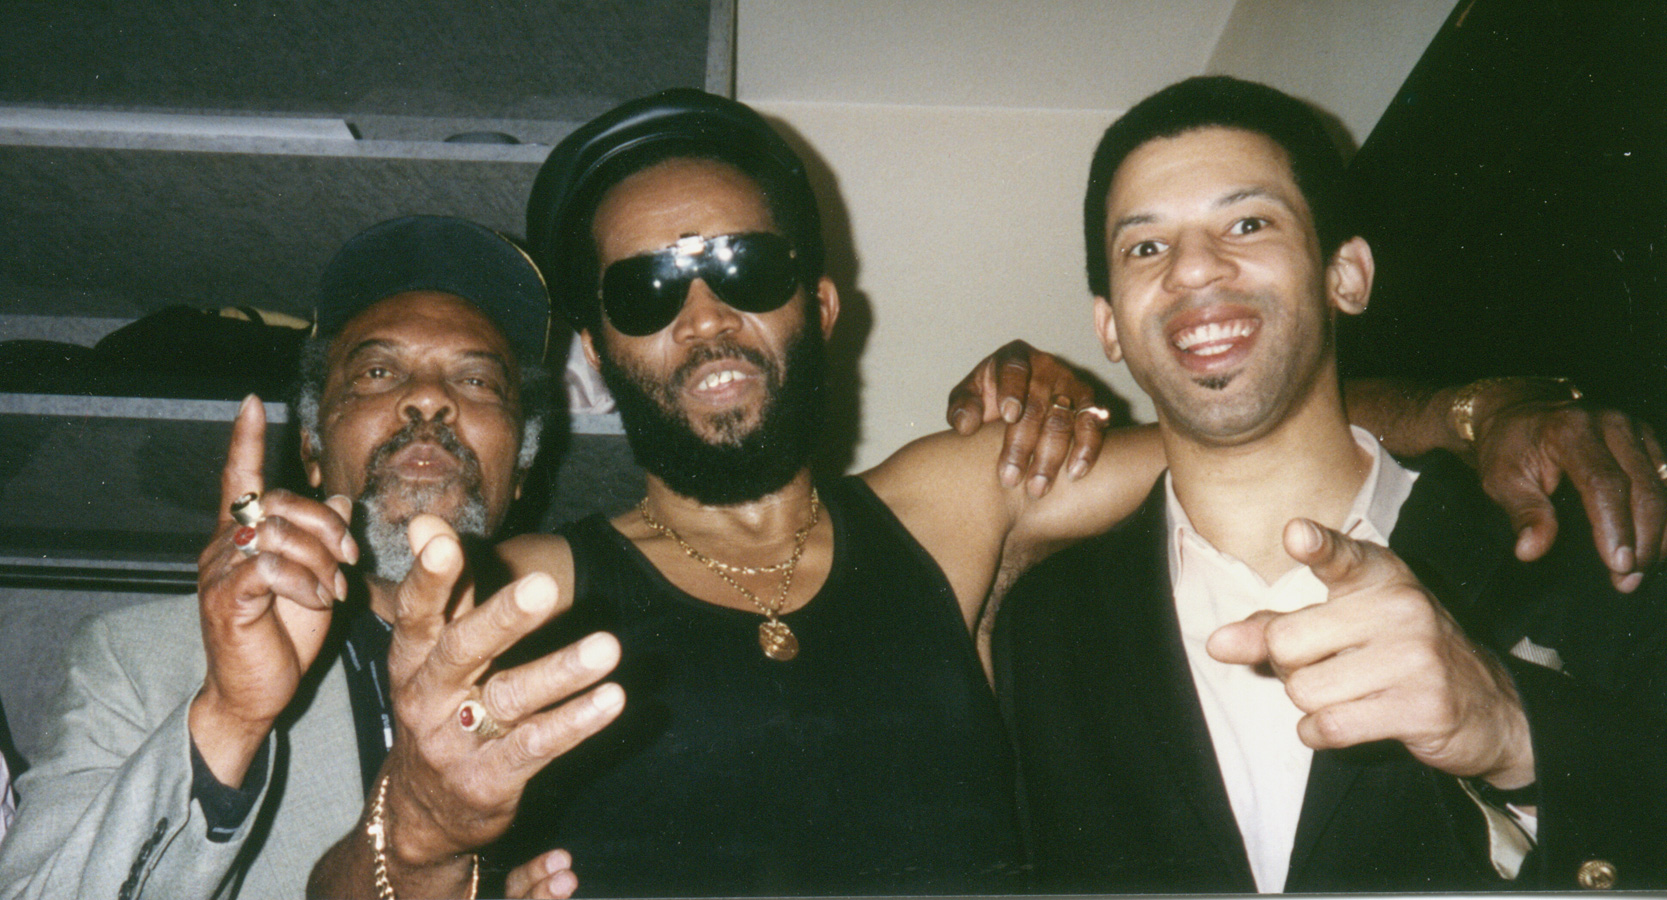 Tommy McCook The Supersonics Rob Walker Stupid Doctor Grooving In Style